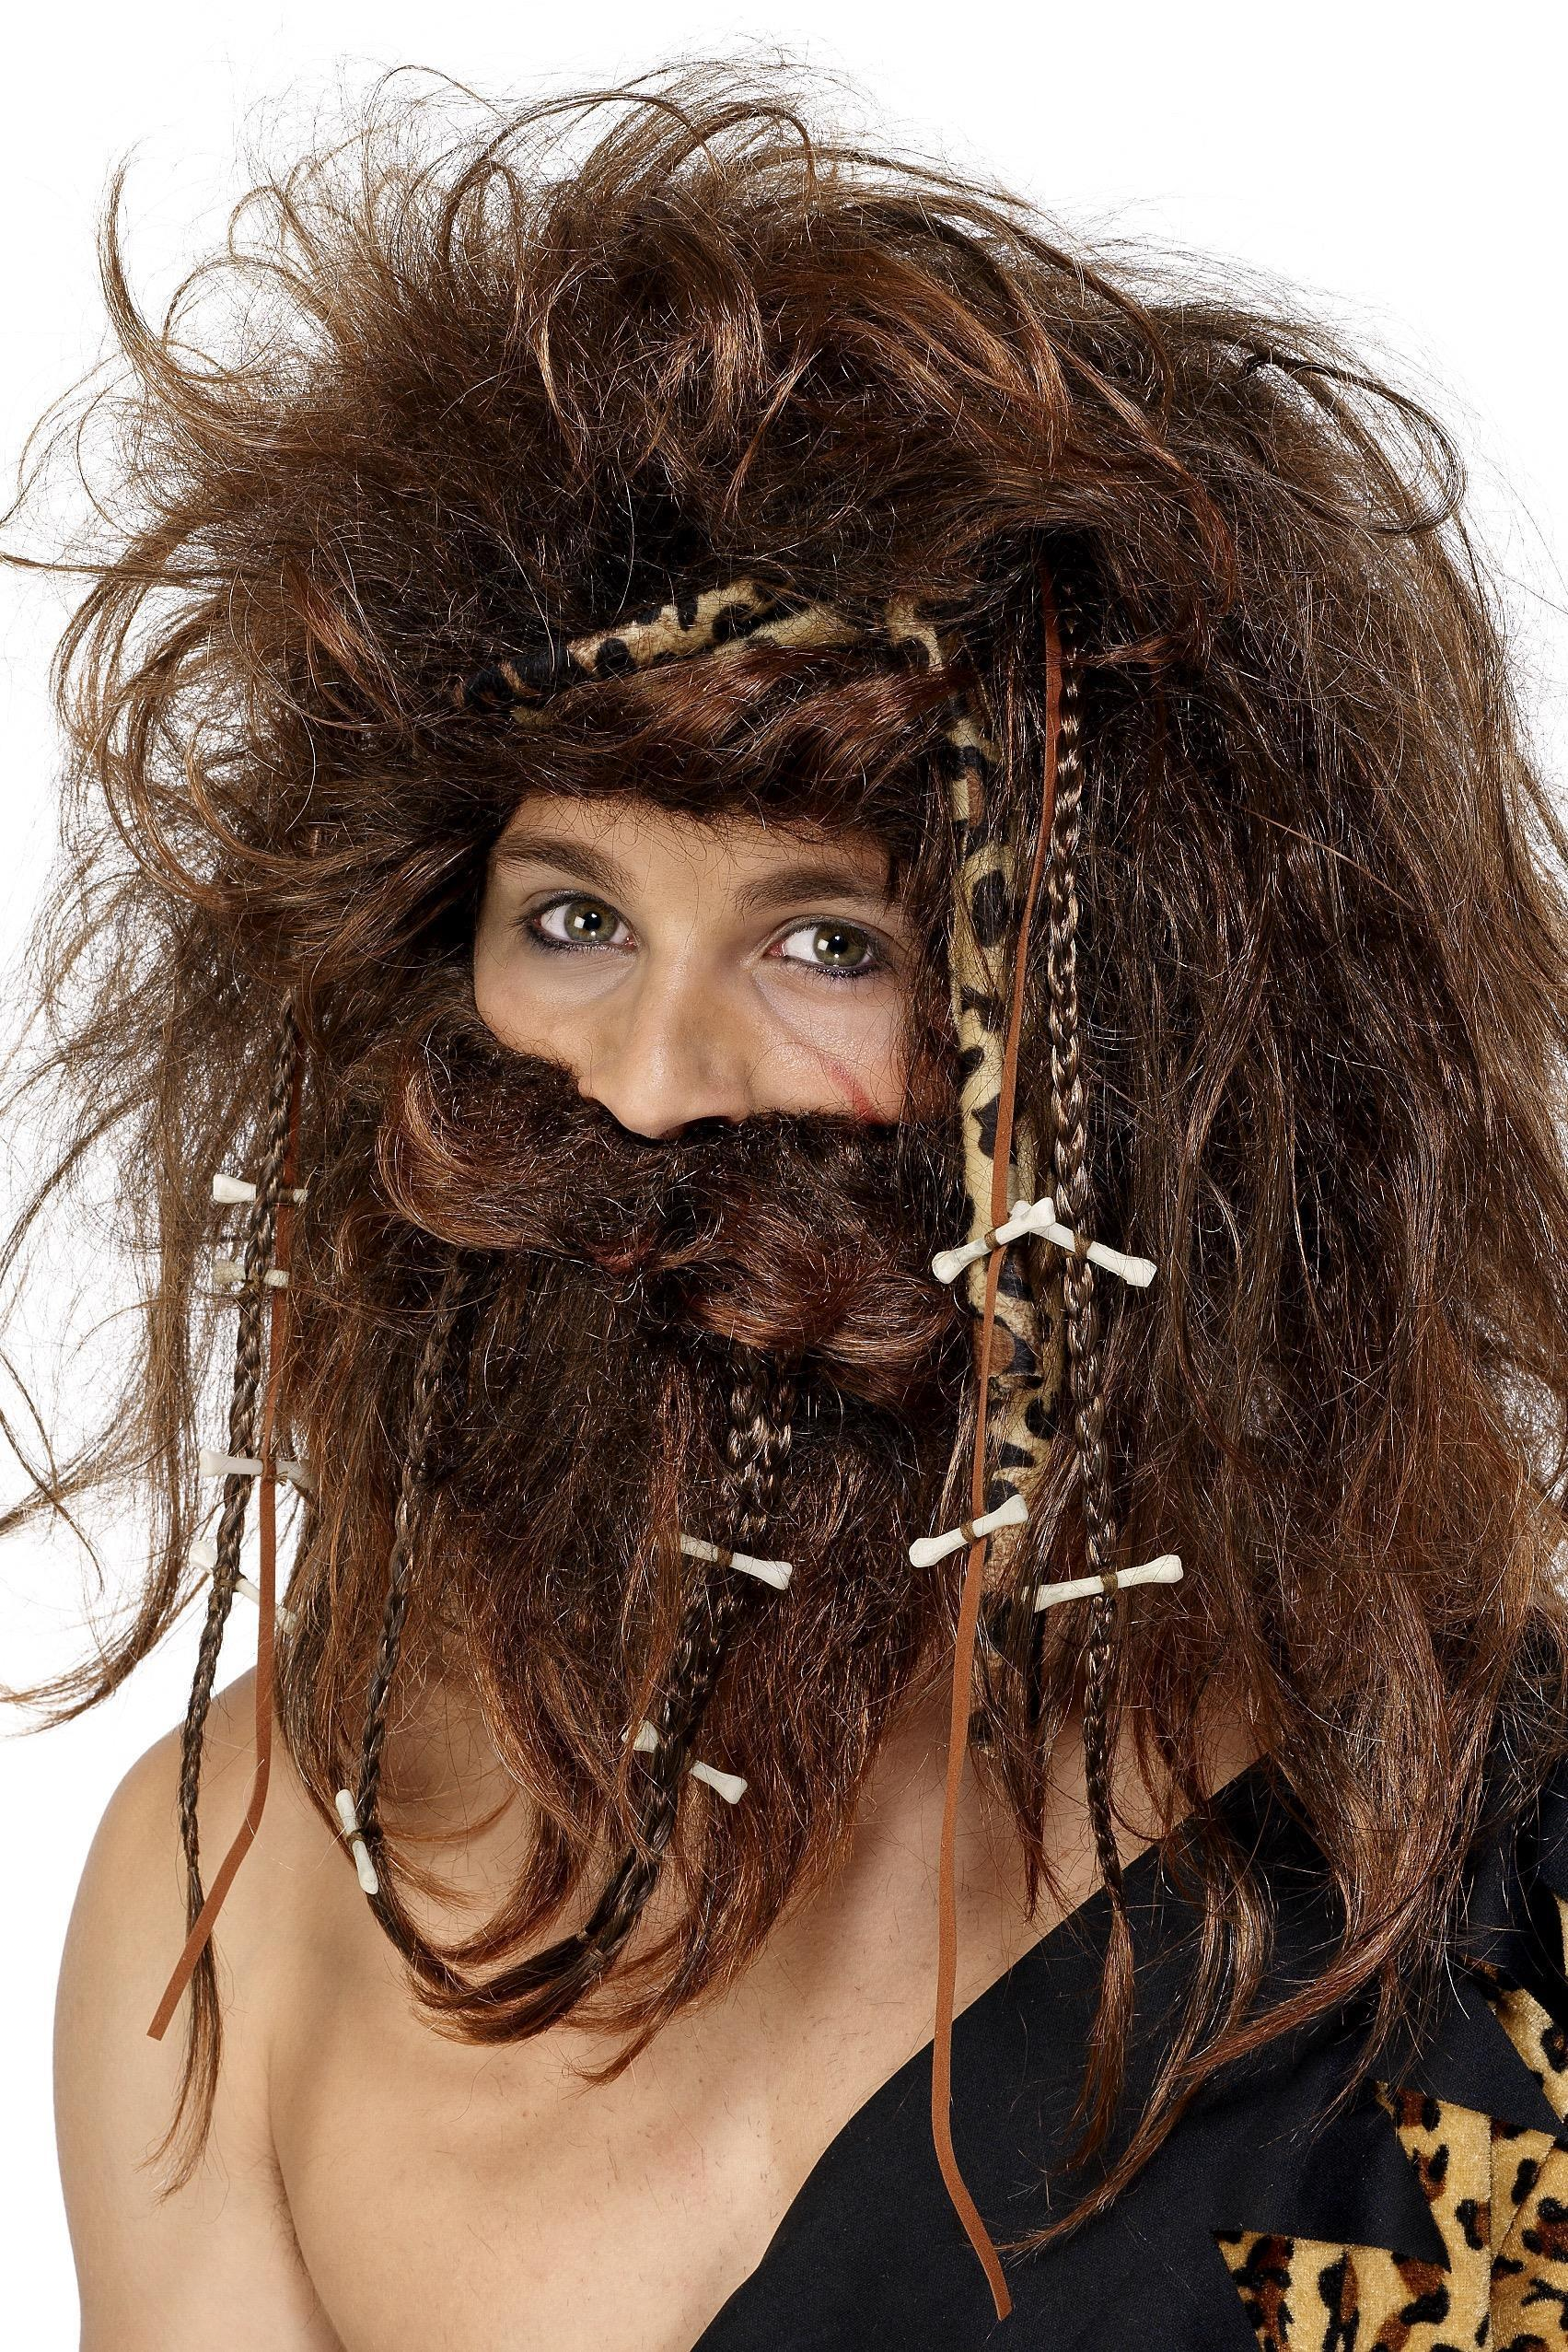 Crazy Caveman Wig & Beard Set